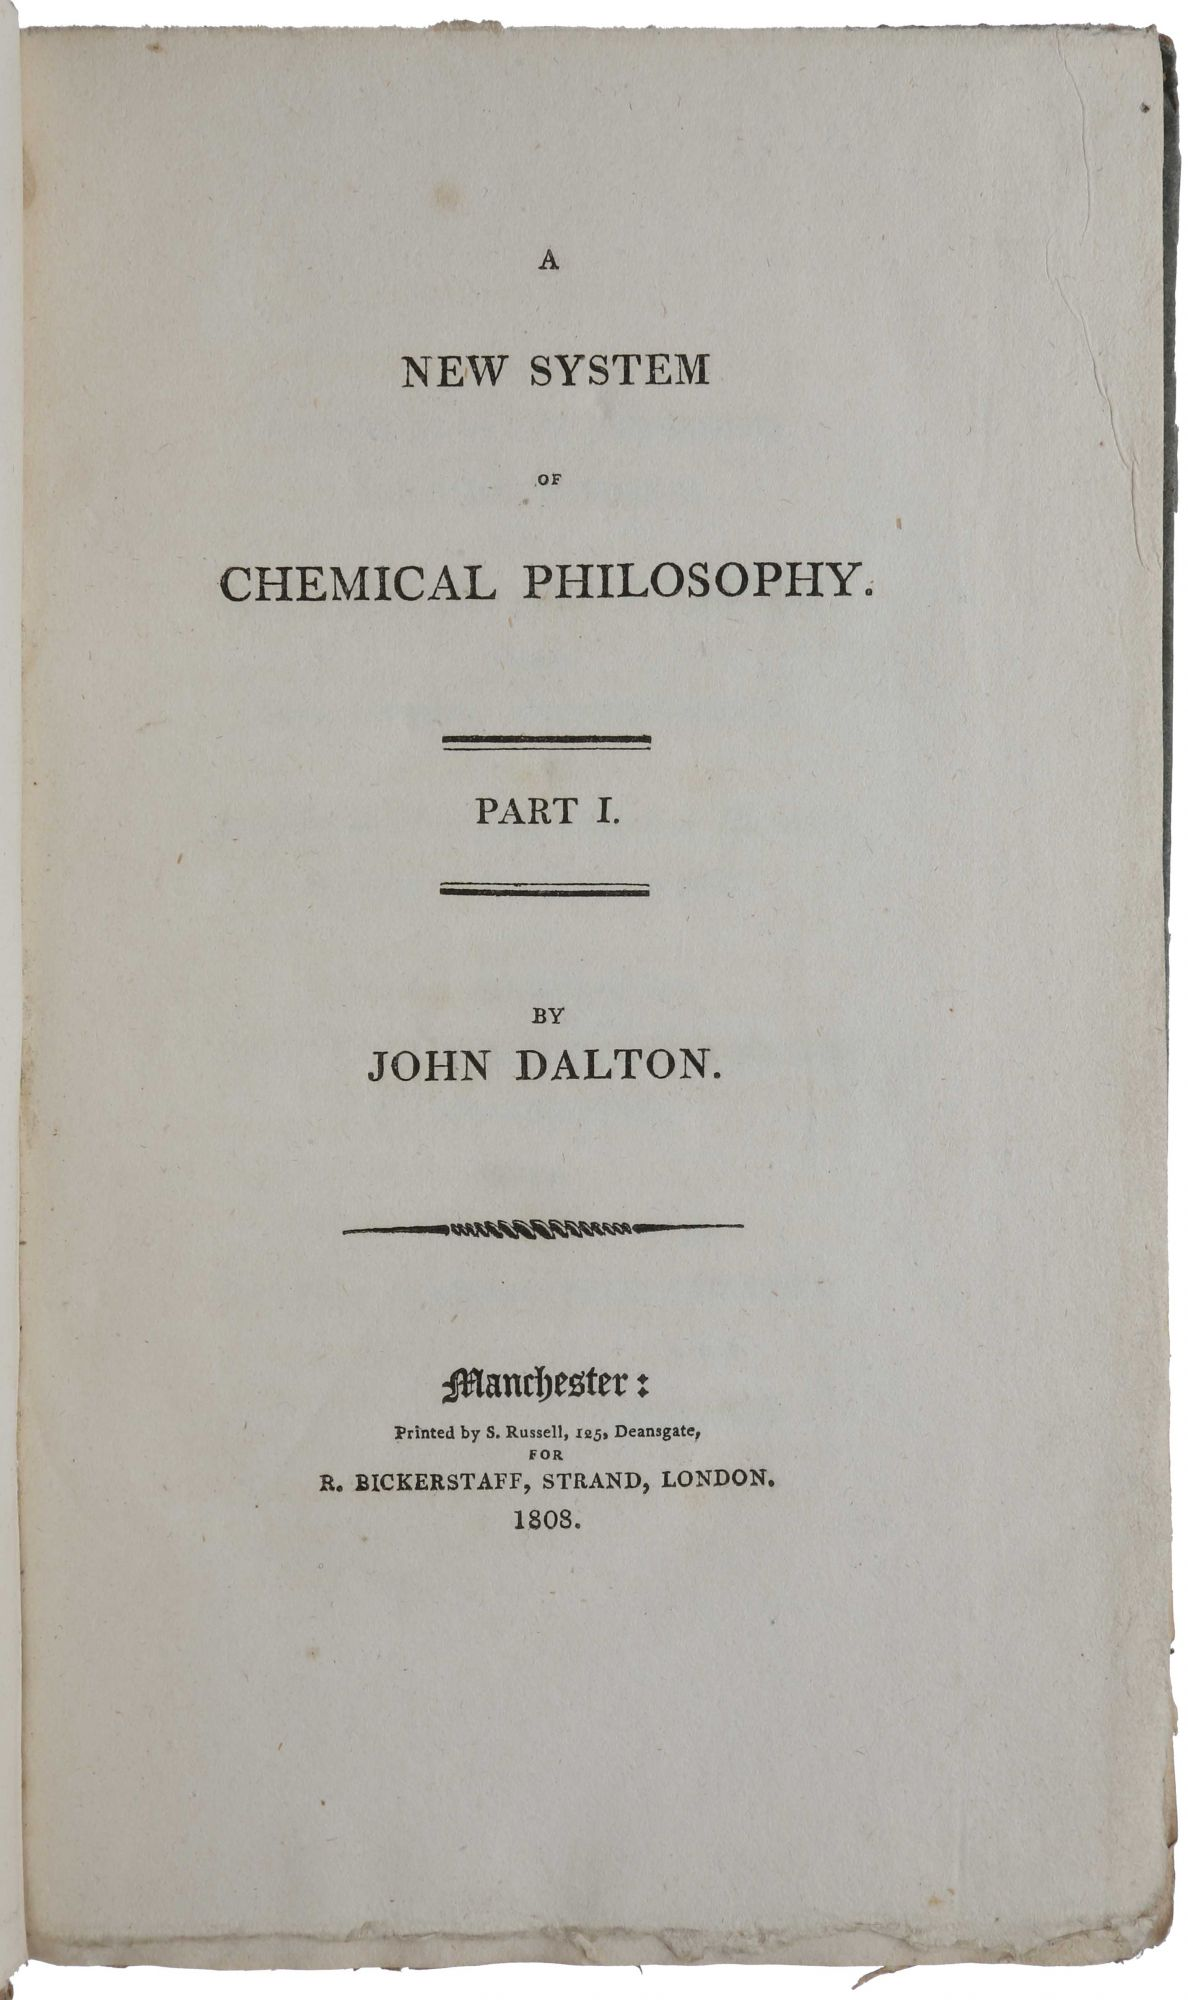 an analysis of the atomic theory of matter by john dalton Definition of john dalton proposes his atomic theory and lays the foundation of modern chemistry the atomic theory of matter as proposed by john dalton in his new system of chemical philosophy (part i,1808 as methods for the analysis of compounds had been refined.